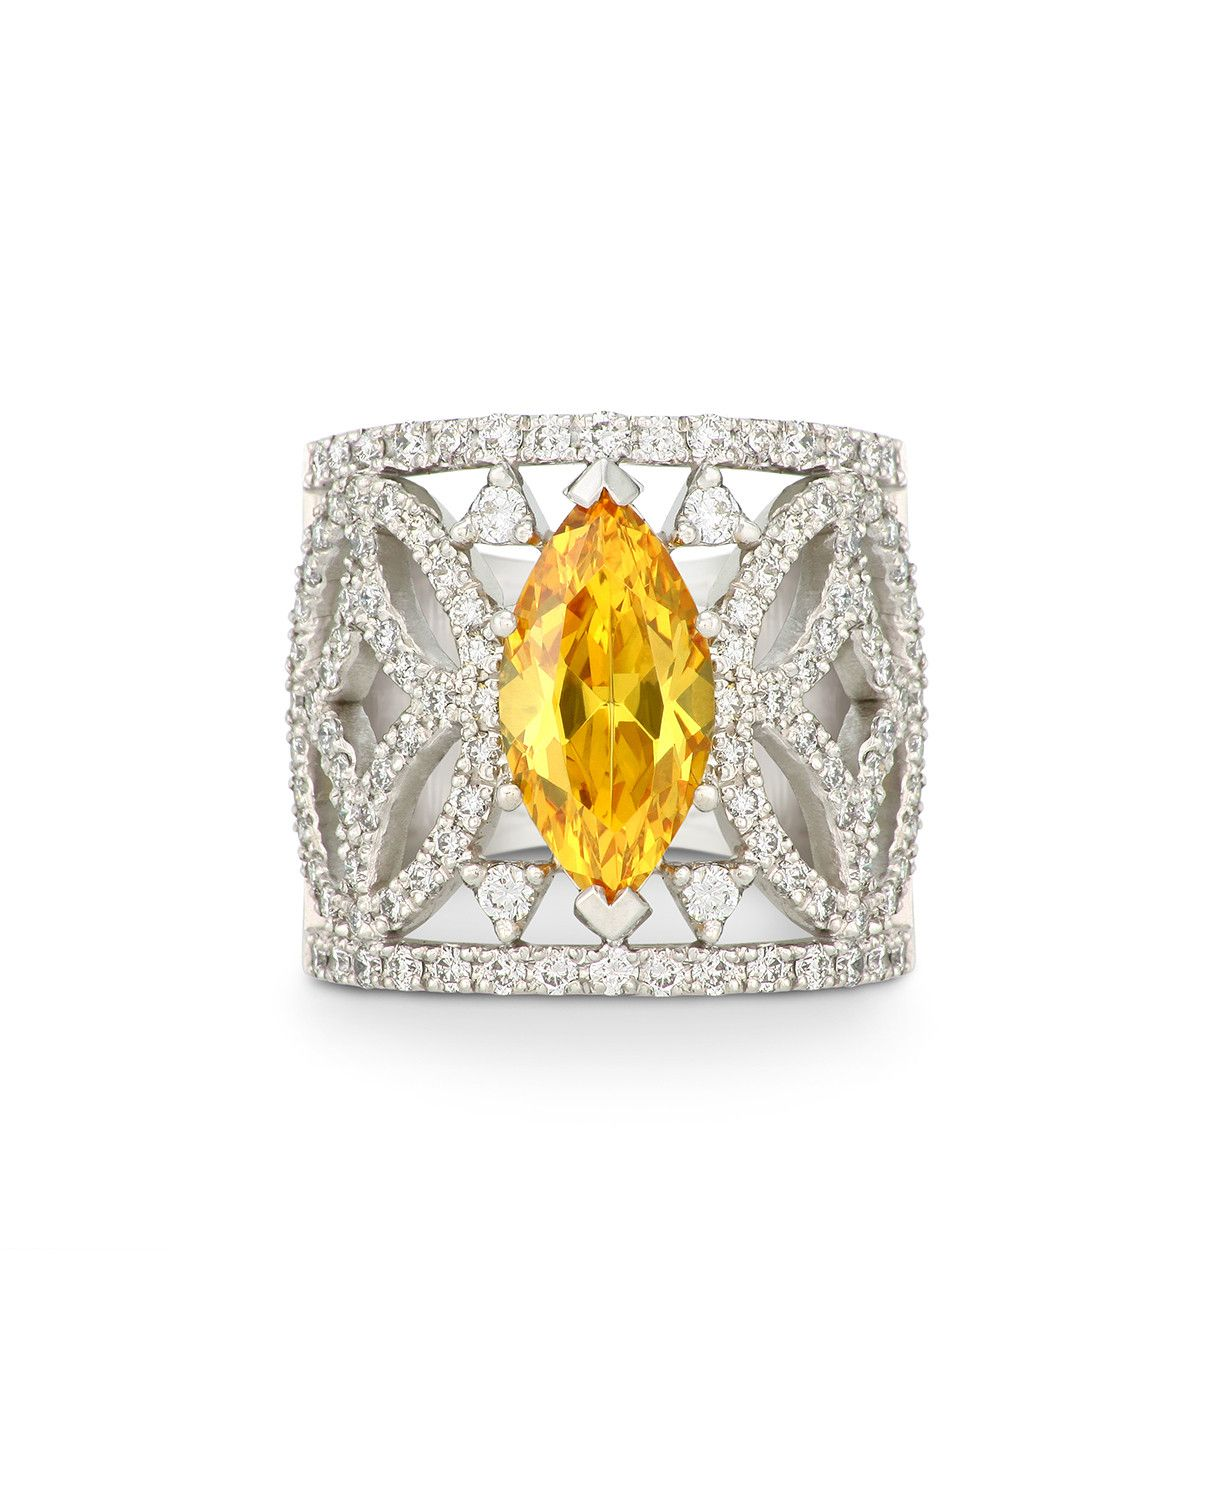 3aa6b8ca9 The first Autumn glow - our beautiful citrine, 18ct white gold and diamonds  Zuri Ring – Jenna Clifford